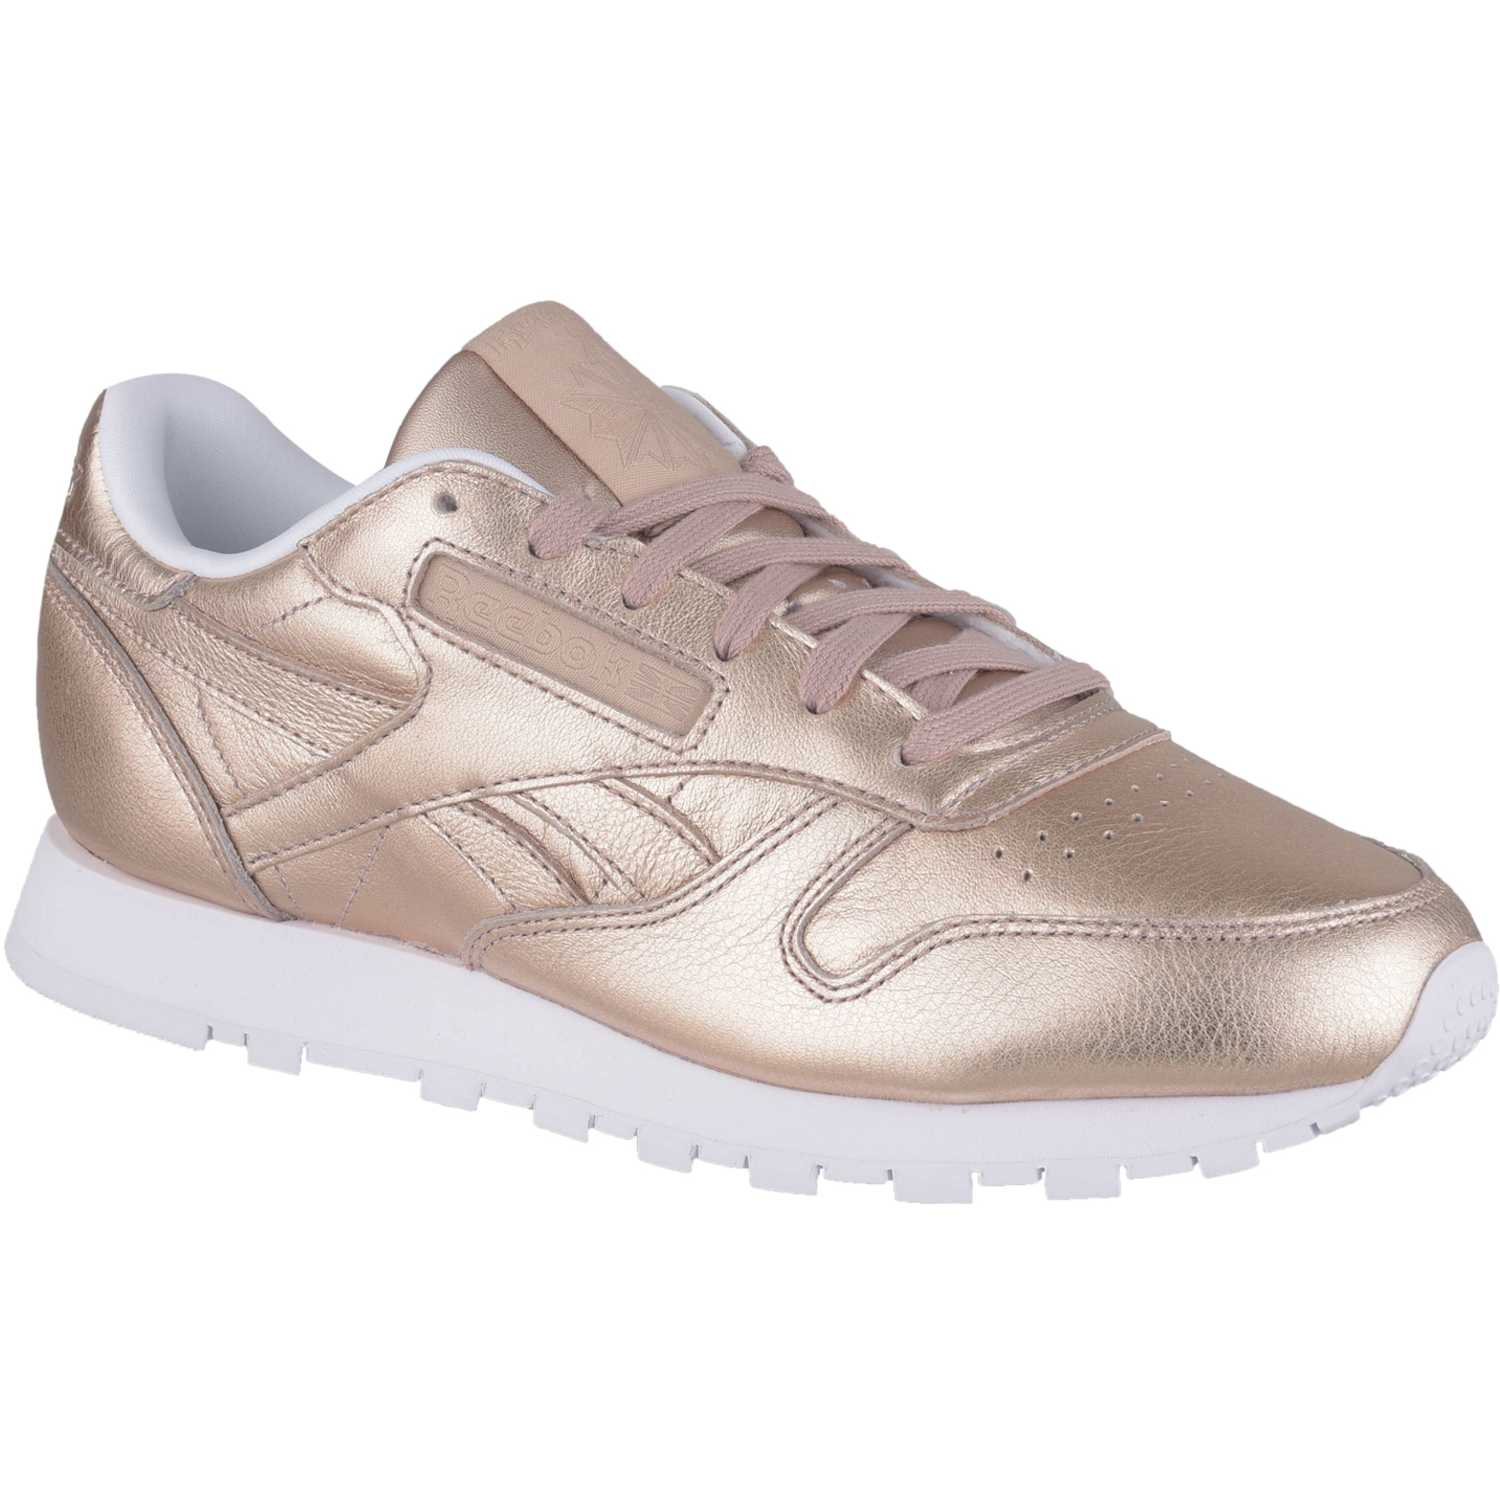 Zapatilla de Mujer Reebok Rose Gold cl leather melted metal